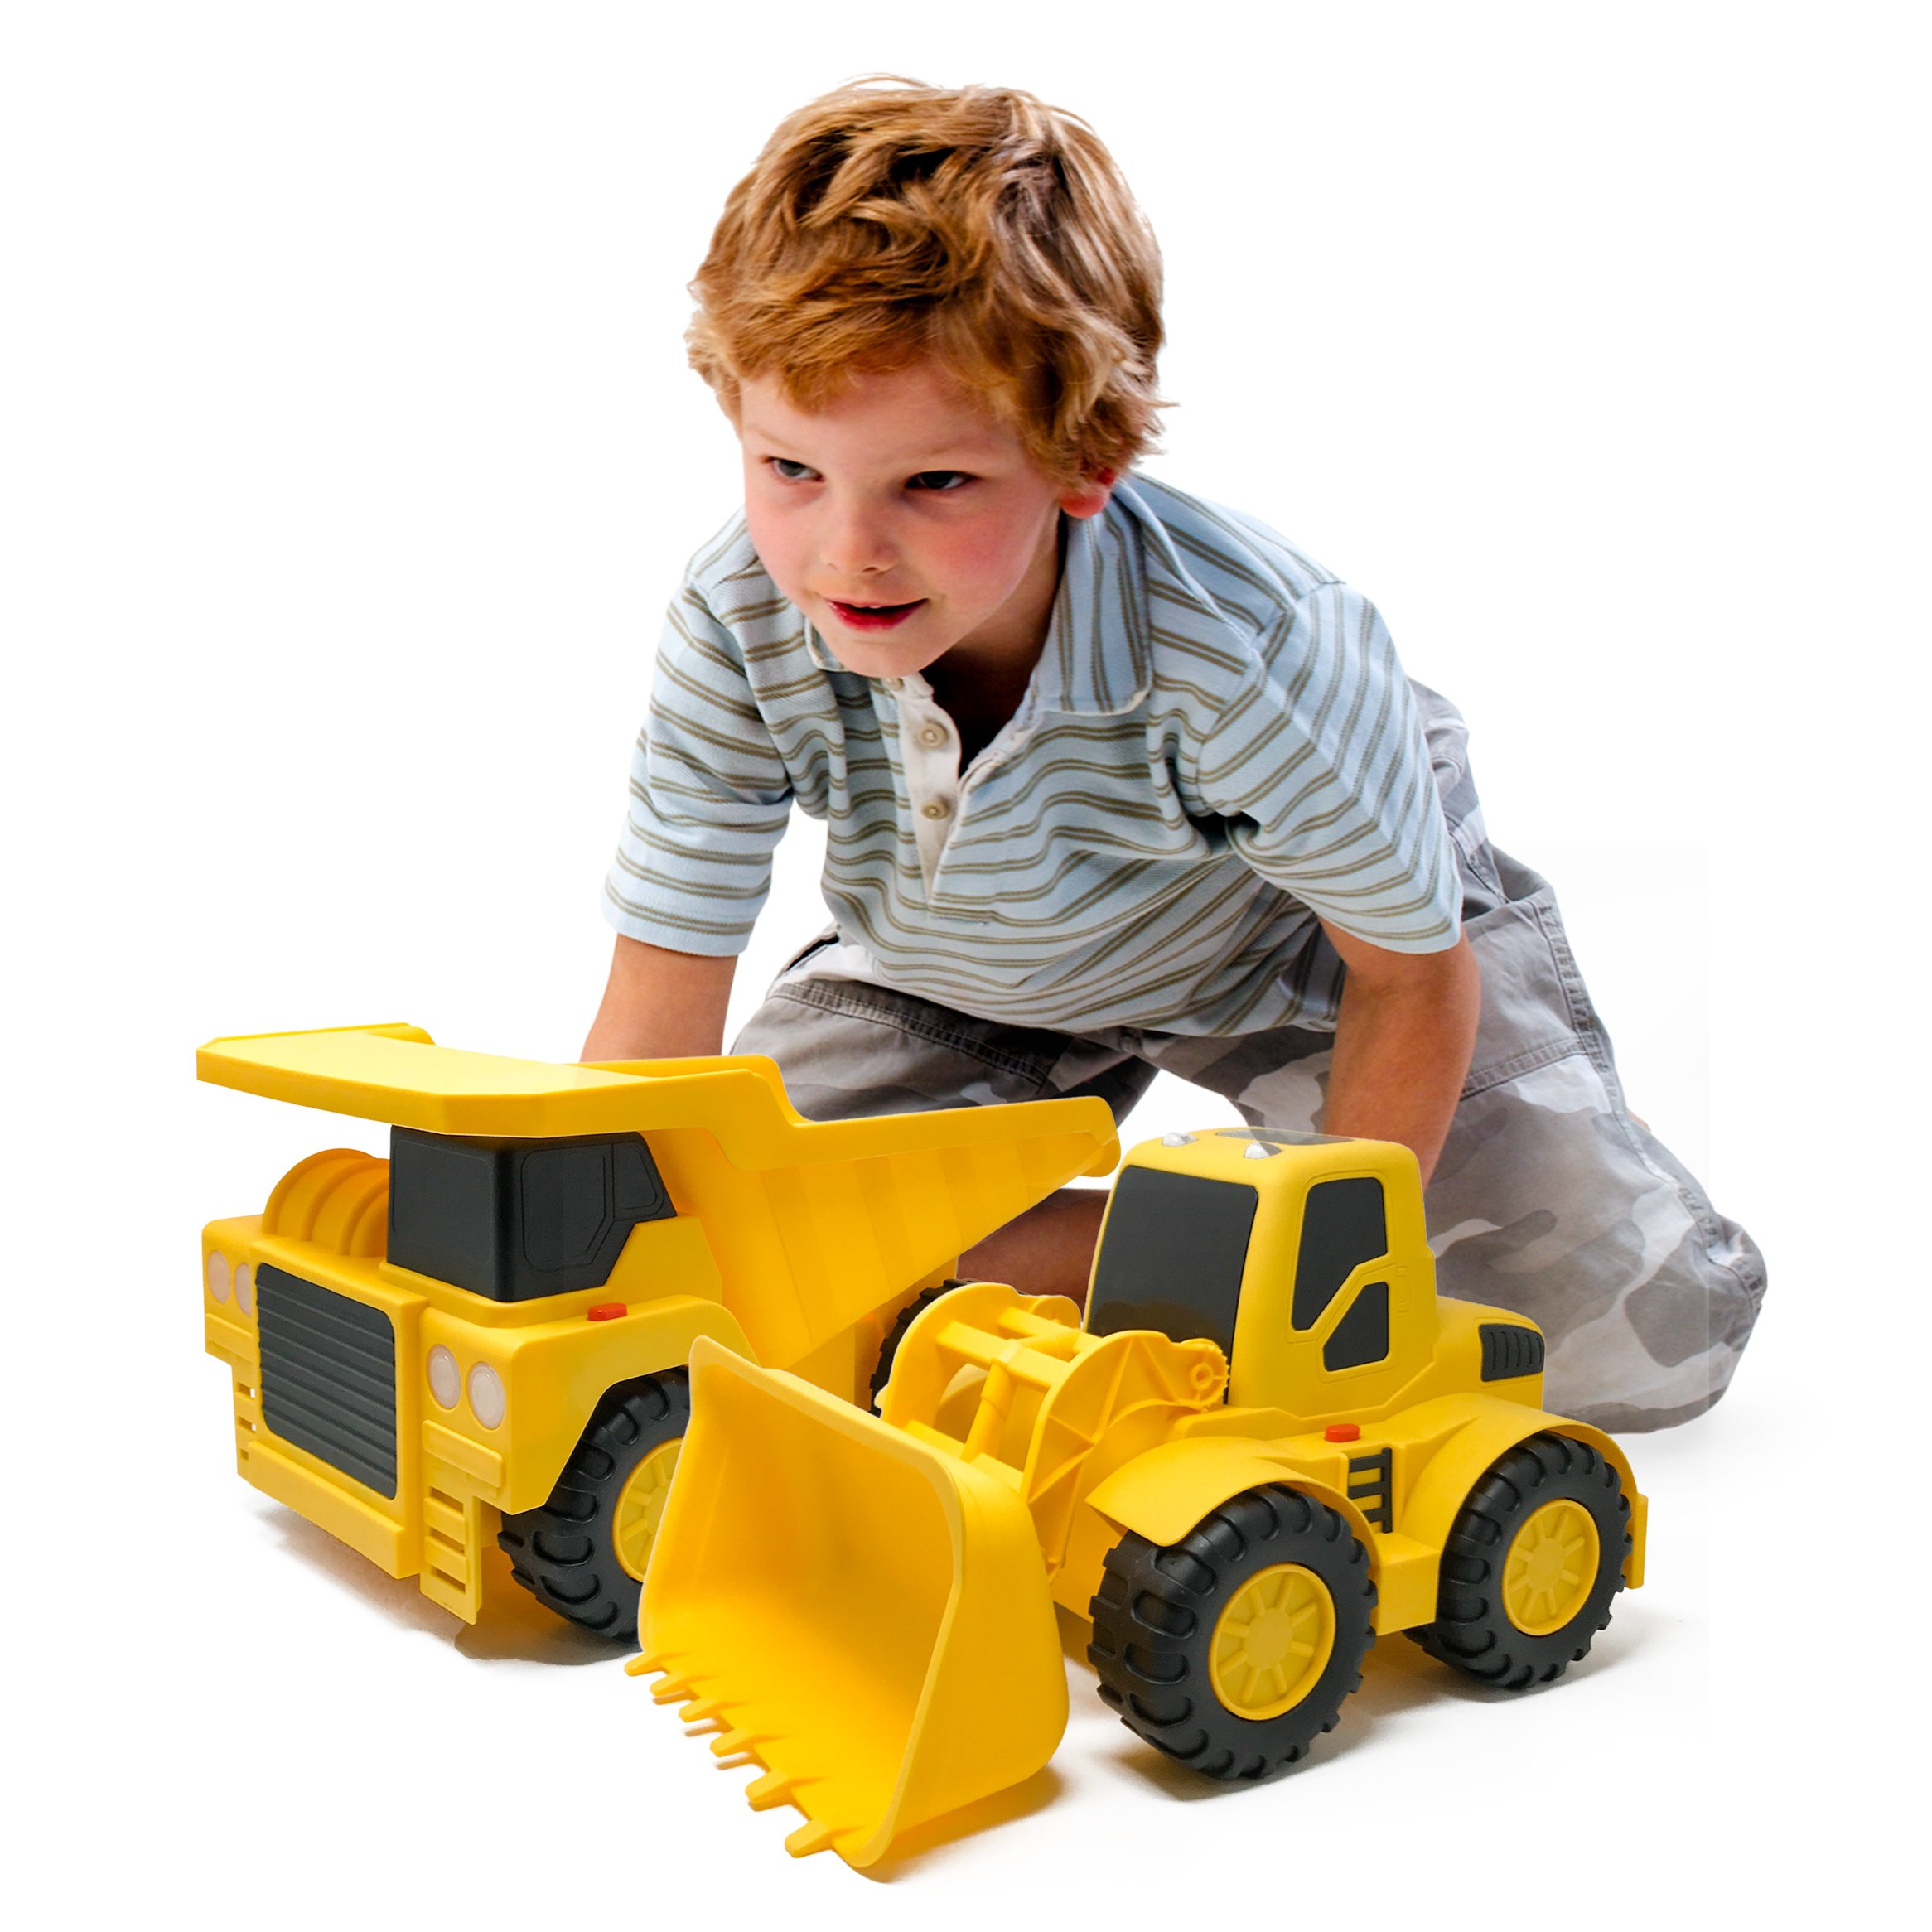 Boley 2-Piece 18'' Construction Vehicles - Dump Truck and Bulldozer Construction Toys - Button-Activated Light & Sound Construction Trucks, Perfect Truck toy for Toddler Boys